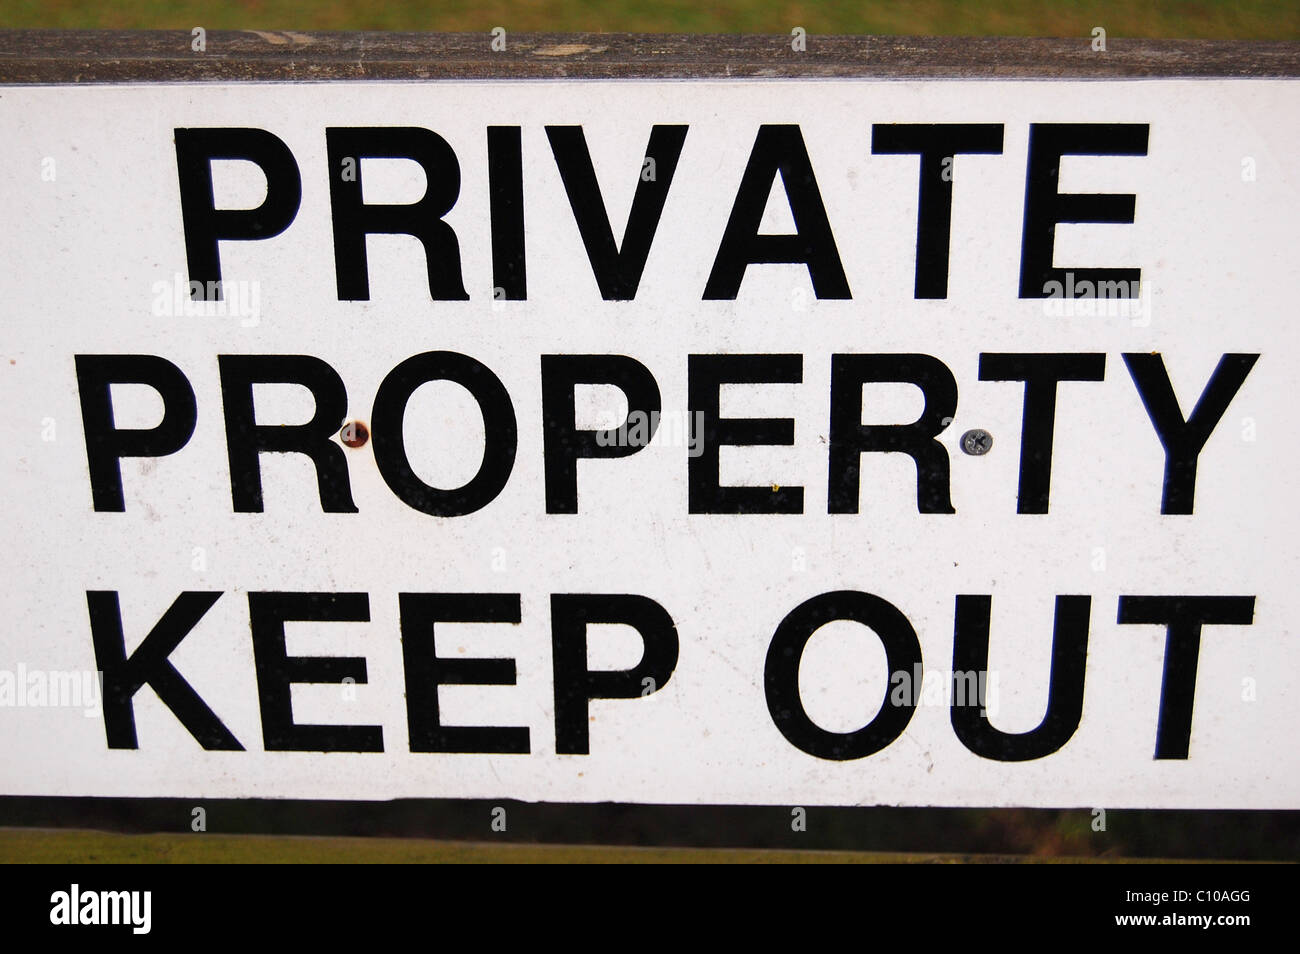 private property keep out sign - Stock Image